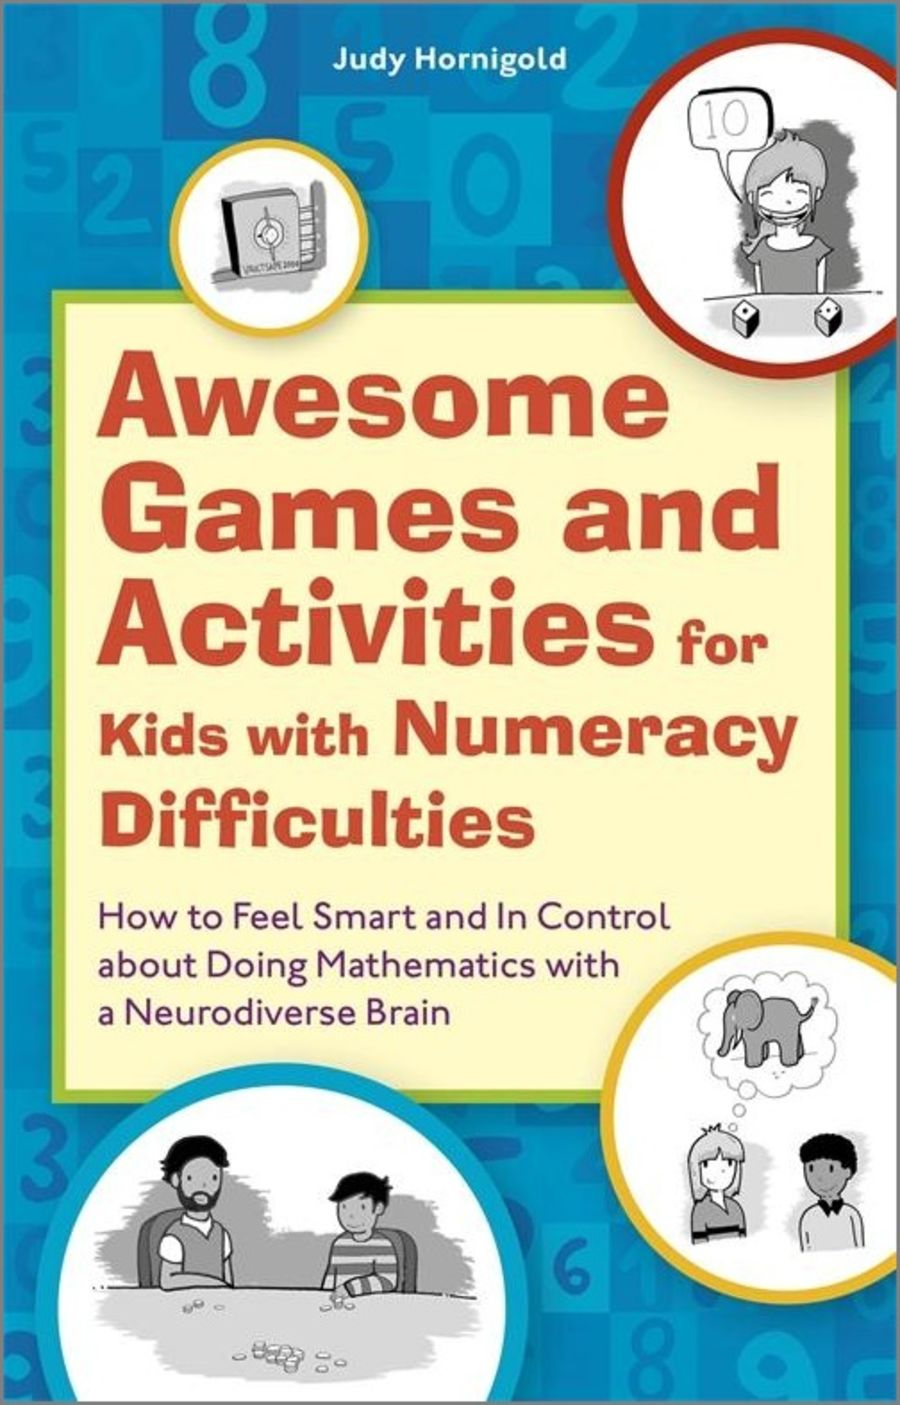 Awesome Games and Activities for Kids with Numeracy Difficulties